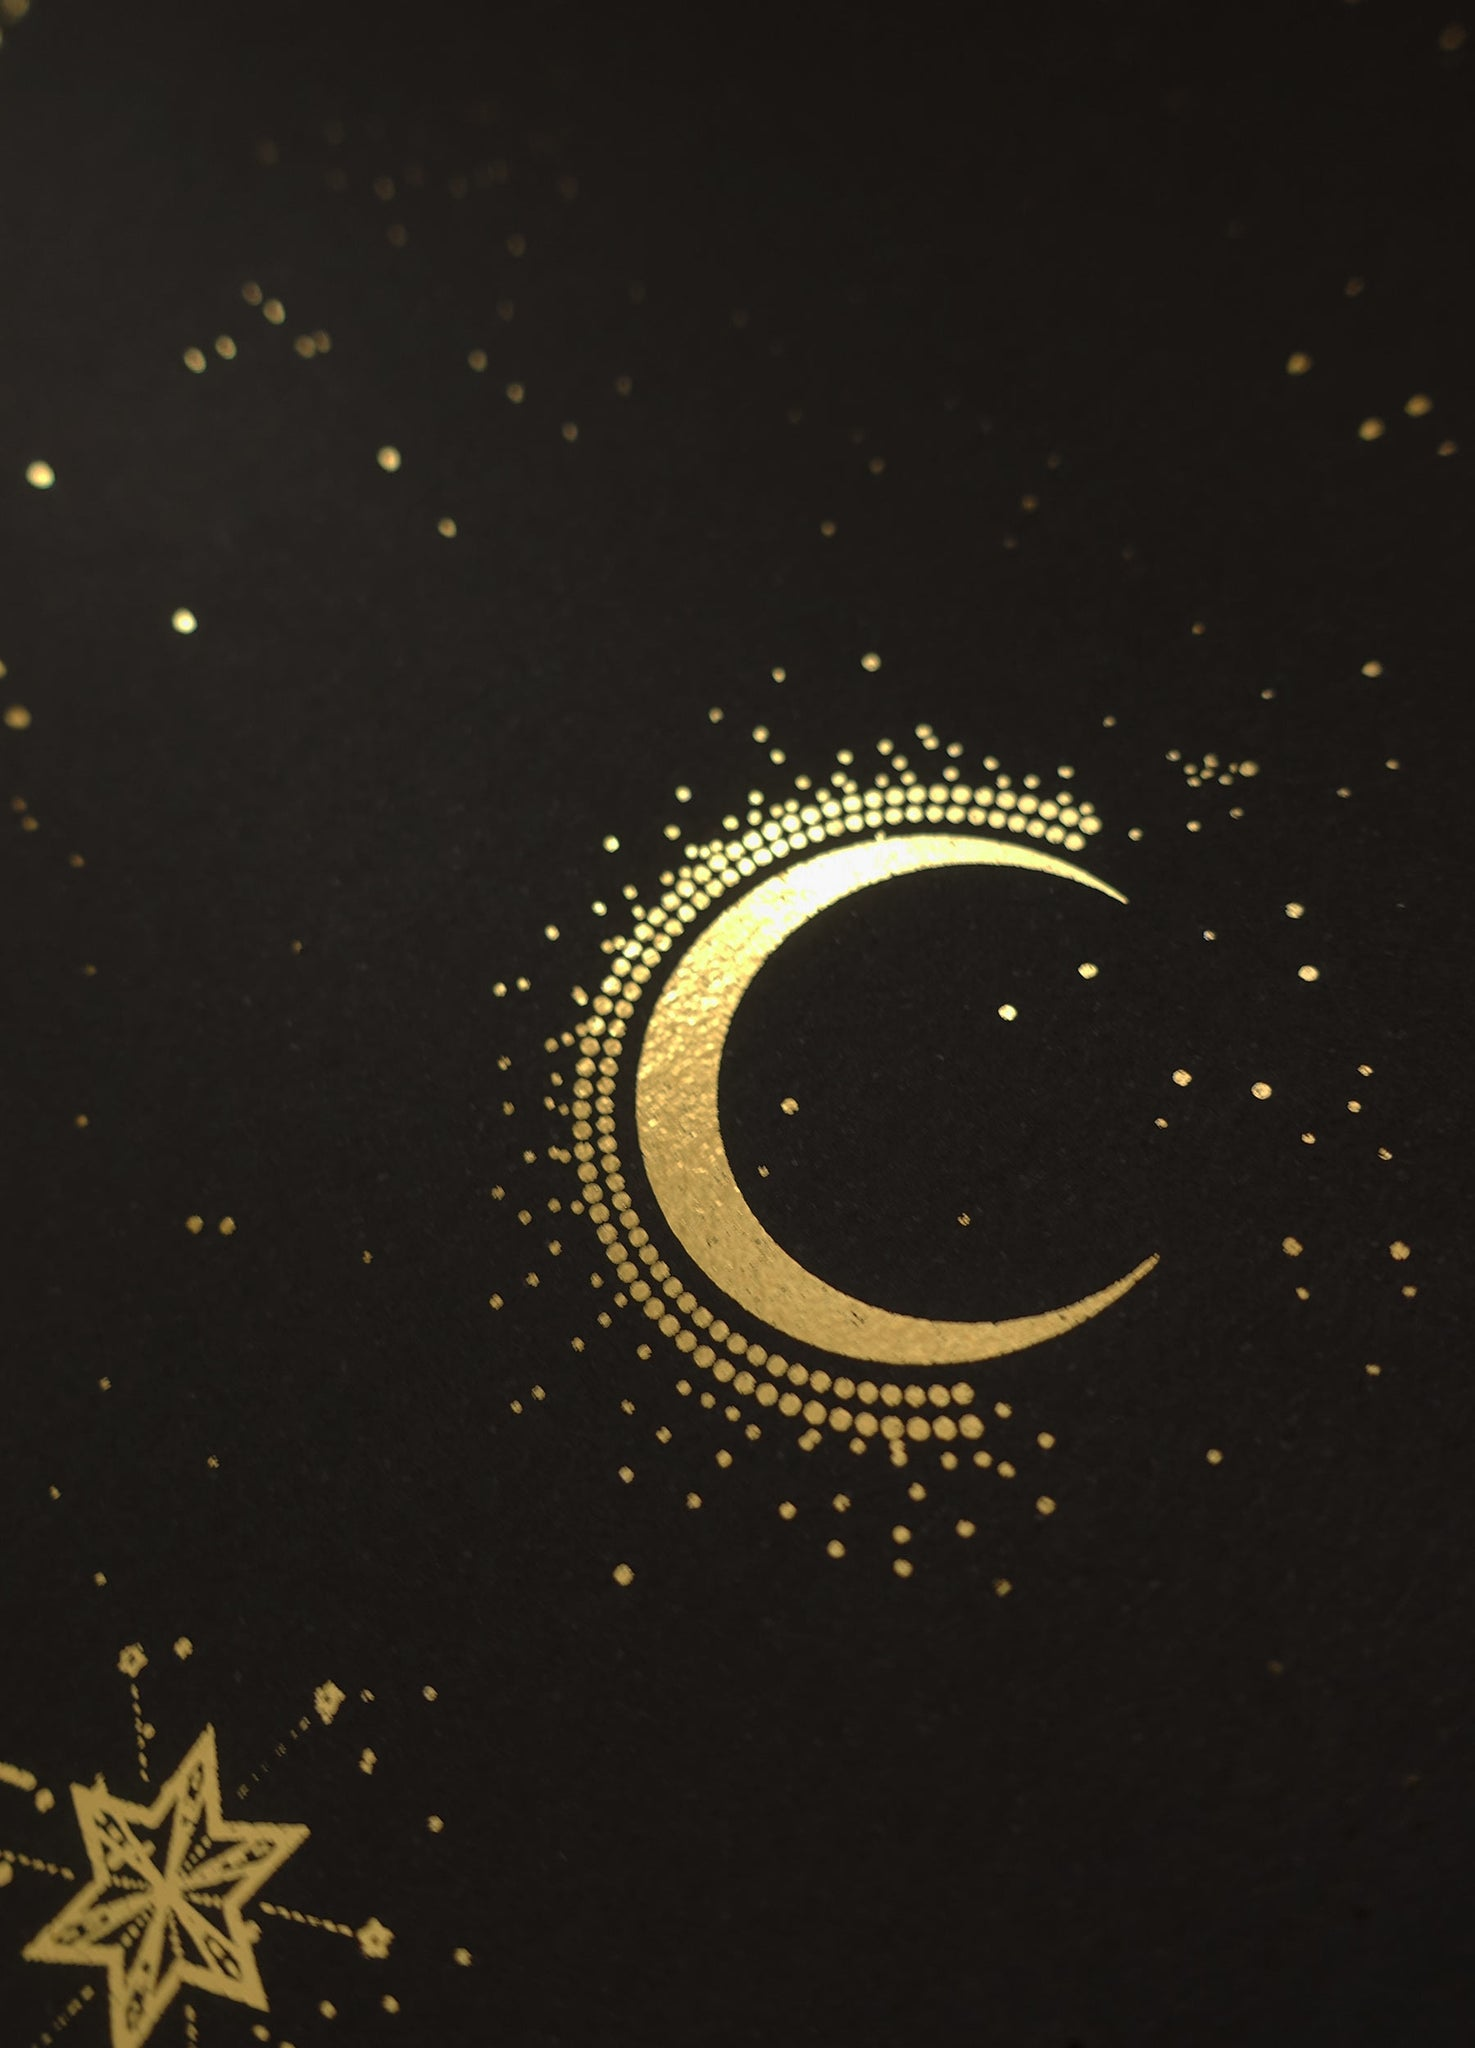 Cassiopeia constellation gold foil print by Cocorrina & Co studio